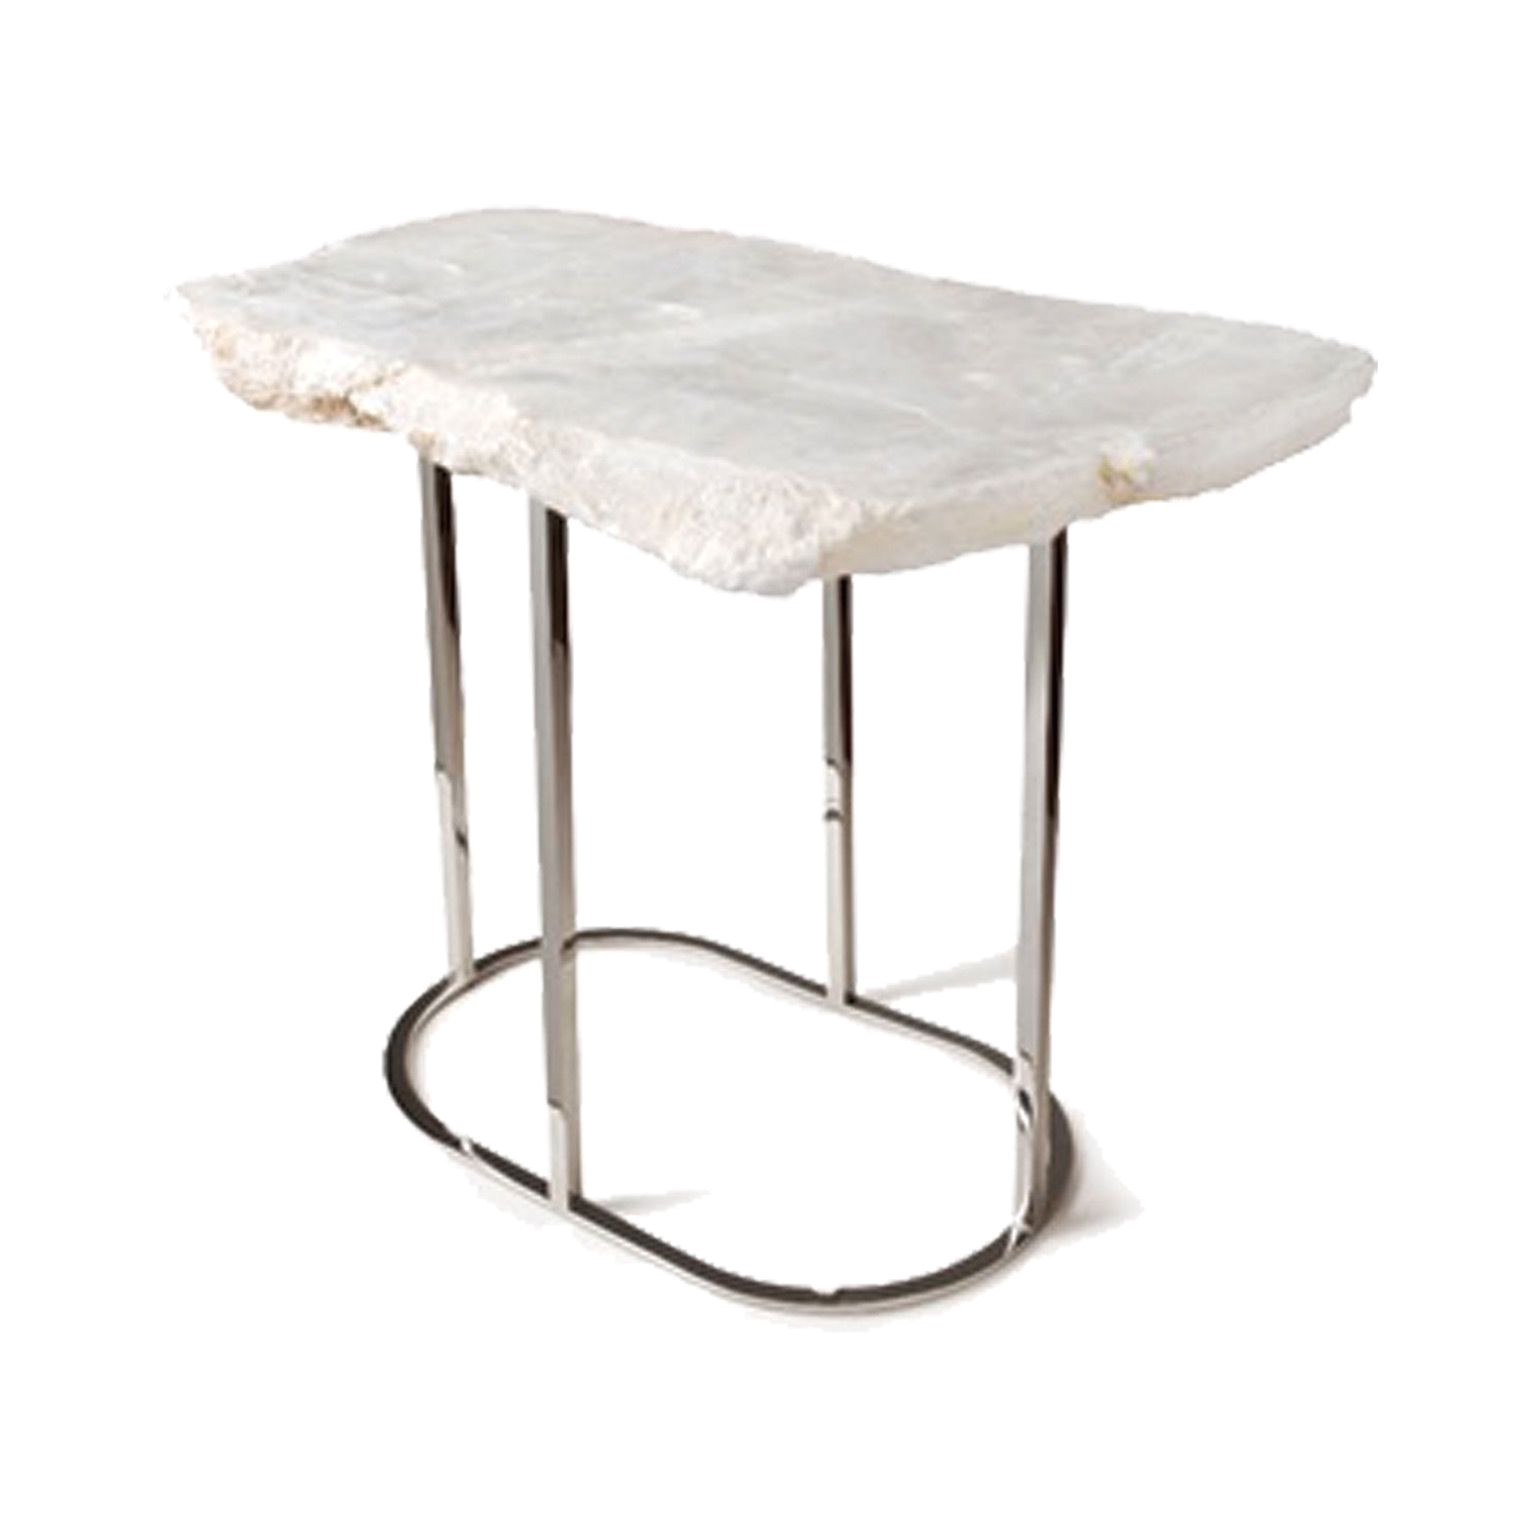 grady selenite crystal table contemporary metal stone coffee cocktail table by matthew studios inc